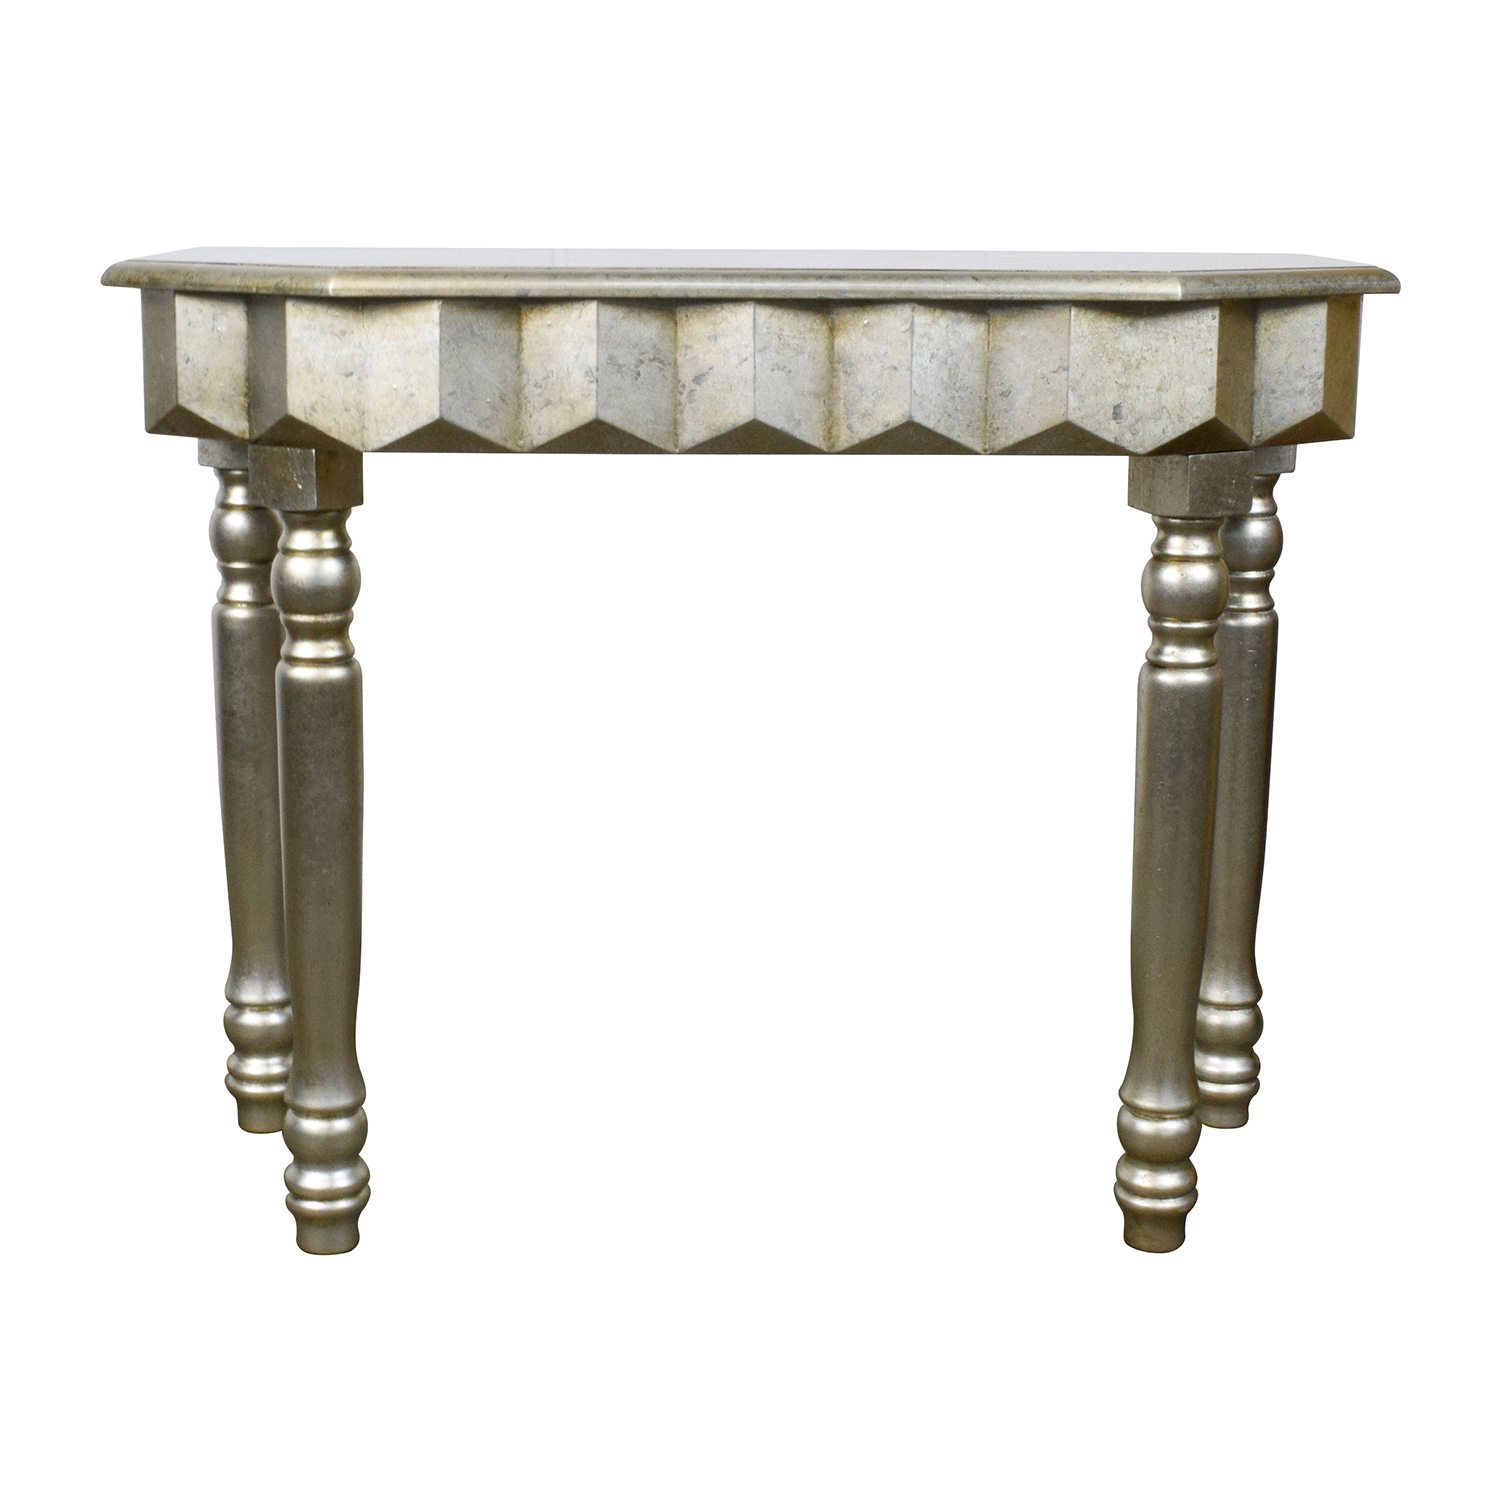 buy Rustic Gold Metallic Console Table online